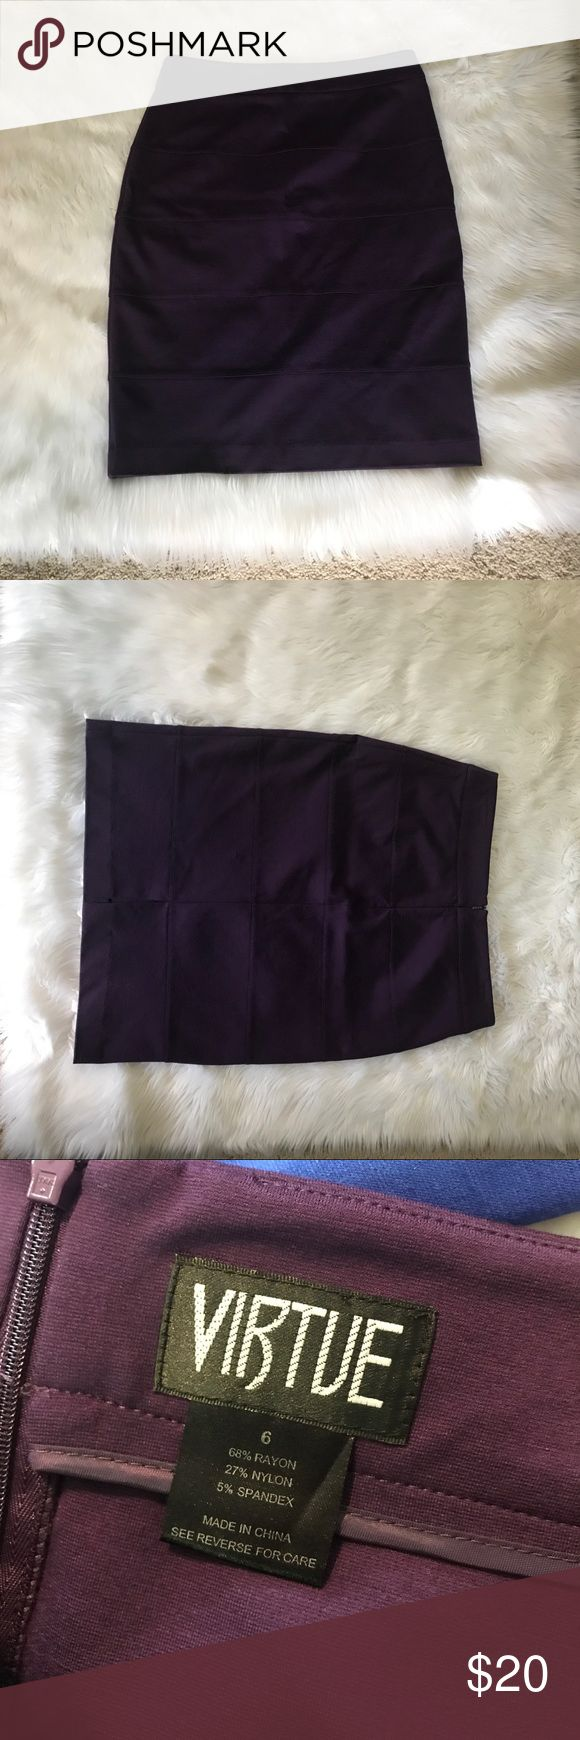 Purple pencil skirt by Virtue size 6 Great bandage style skirt by Virtue size 6 beautifully made and great condition! Color is closest to last photo! ;) Also selling in size 6 Royal Blue! Be sure to check out my other items, and bundle to save! :) virtue Skirts Pencil